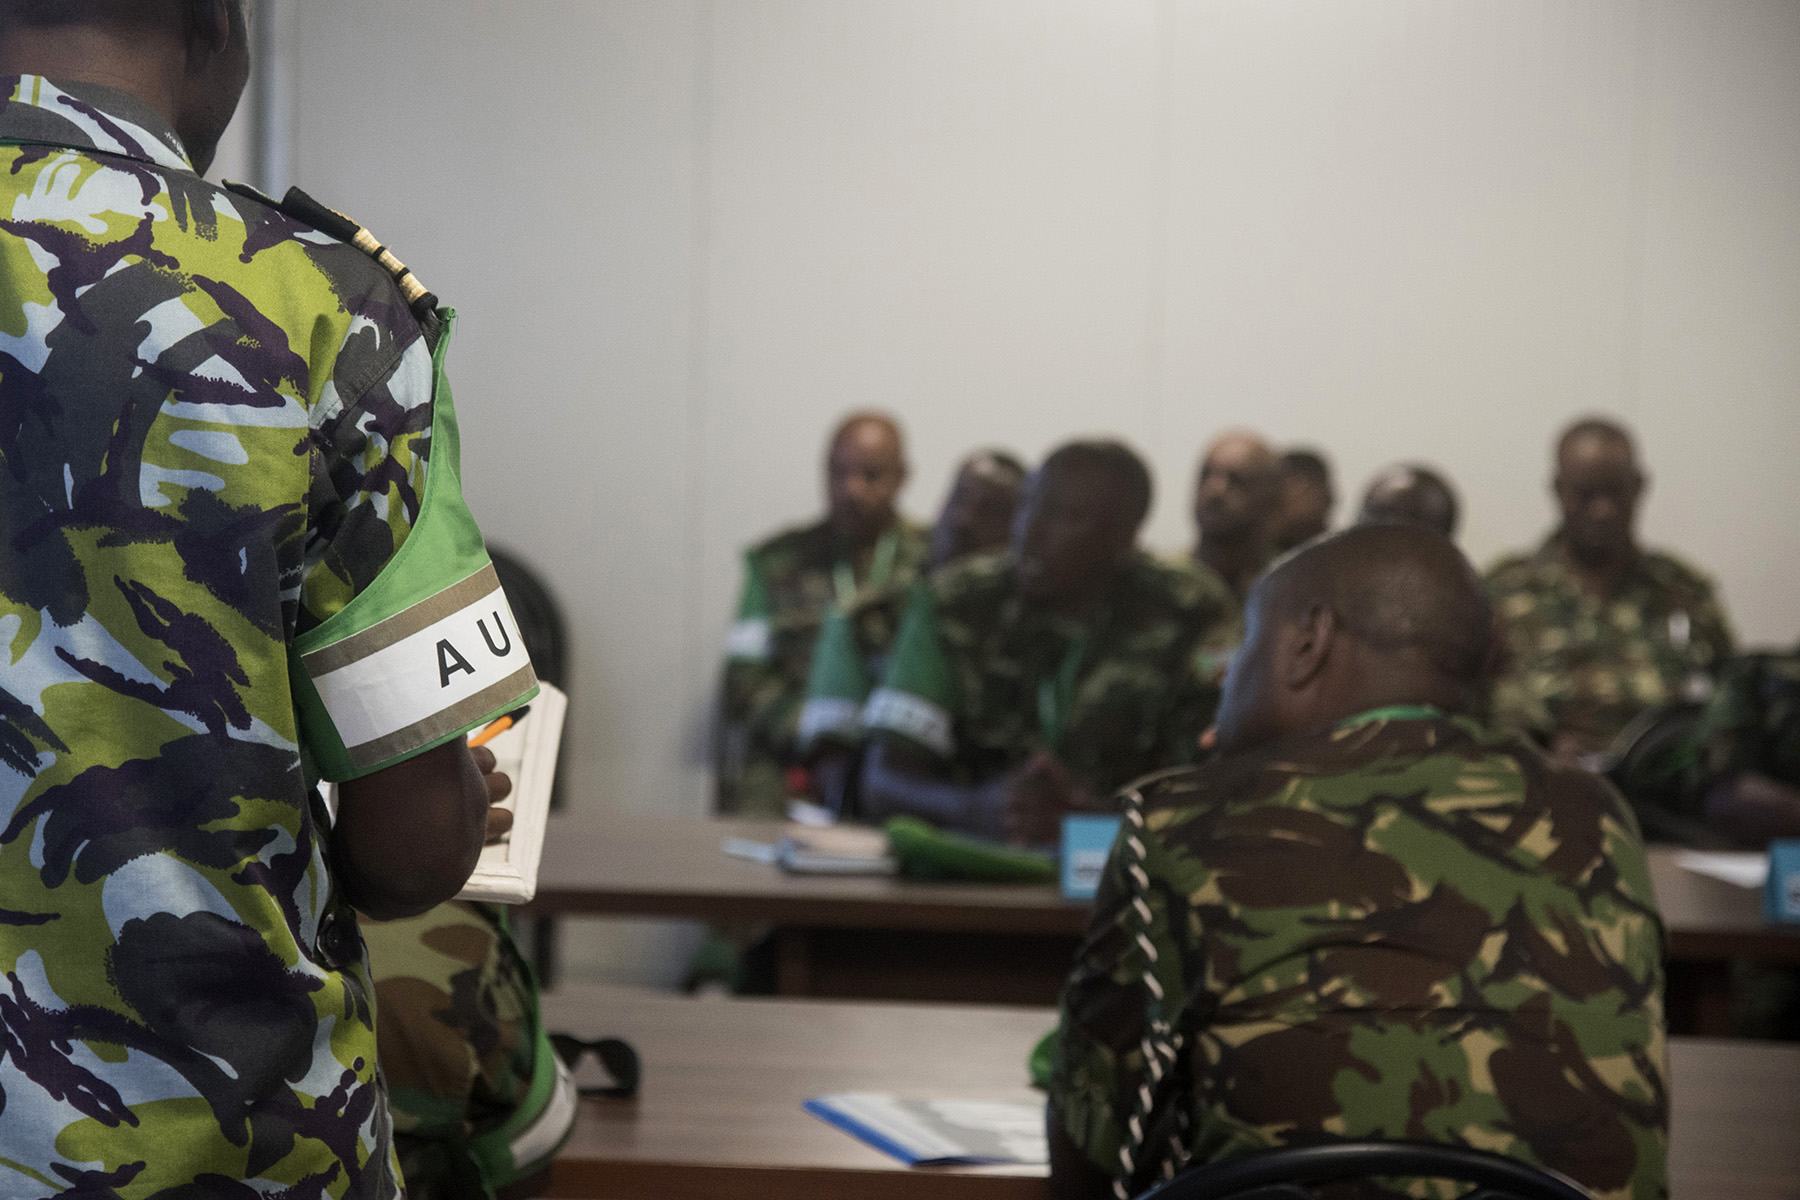 MOGADISHU, Somalia- African Union Mission in Somalia/Somali National Army Sector Commanders attend a sector commanders' conference, Aug. 25, 2016, at the AMISOM Force Headquarters in Mogadishu, Somalia. The conference brings together senior military leaders from coalition partners and the sectors to review efficiency and needed improvements for security operations and SNA collaboration strategies. (U.S. Air Force photo by Staff Sgt. Tiffany DeNault)